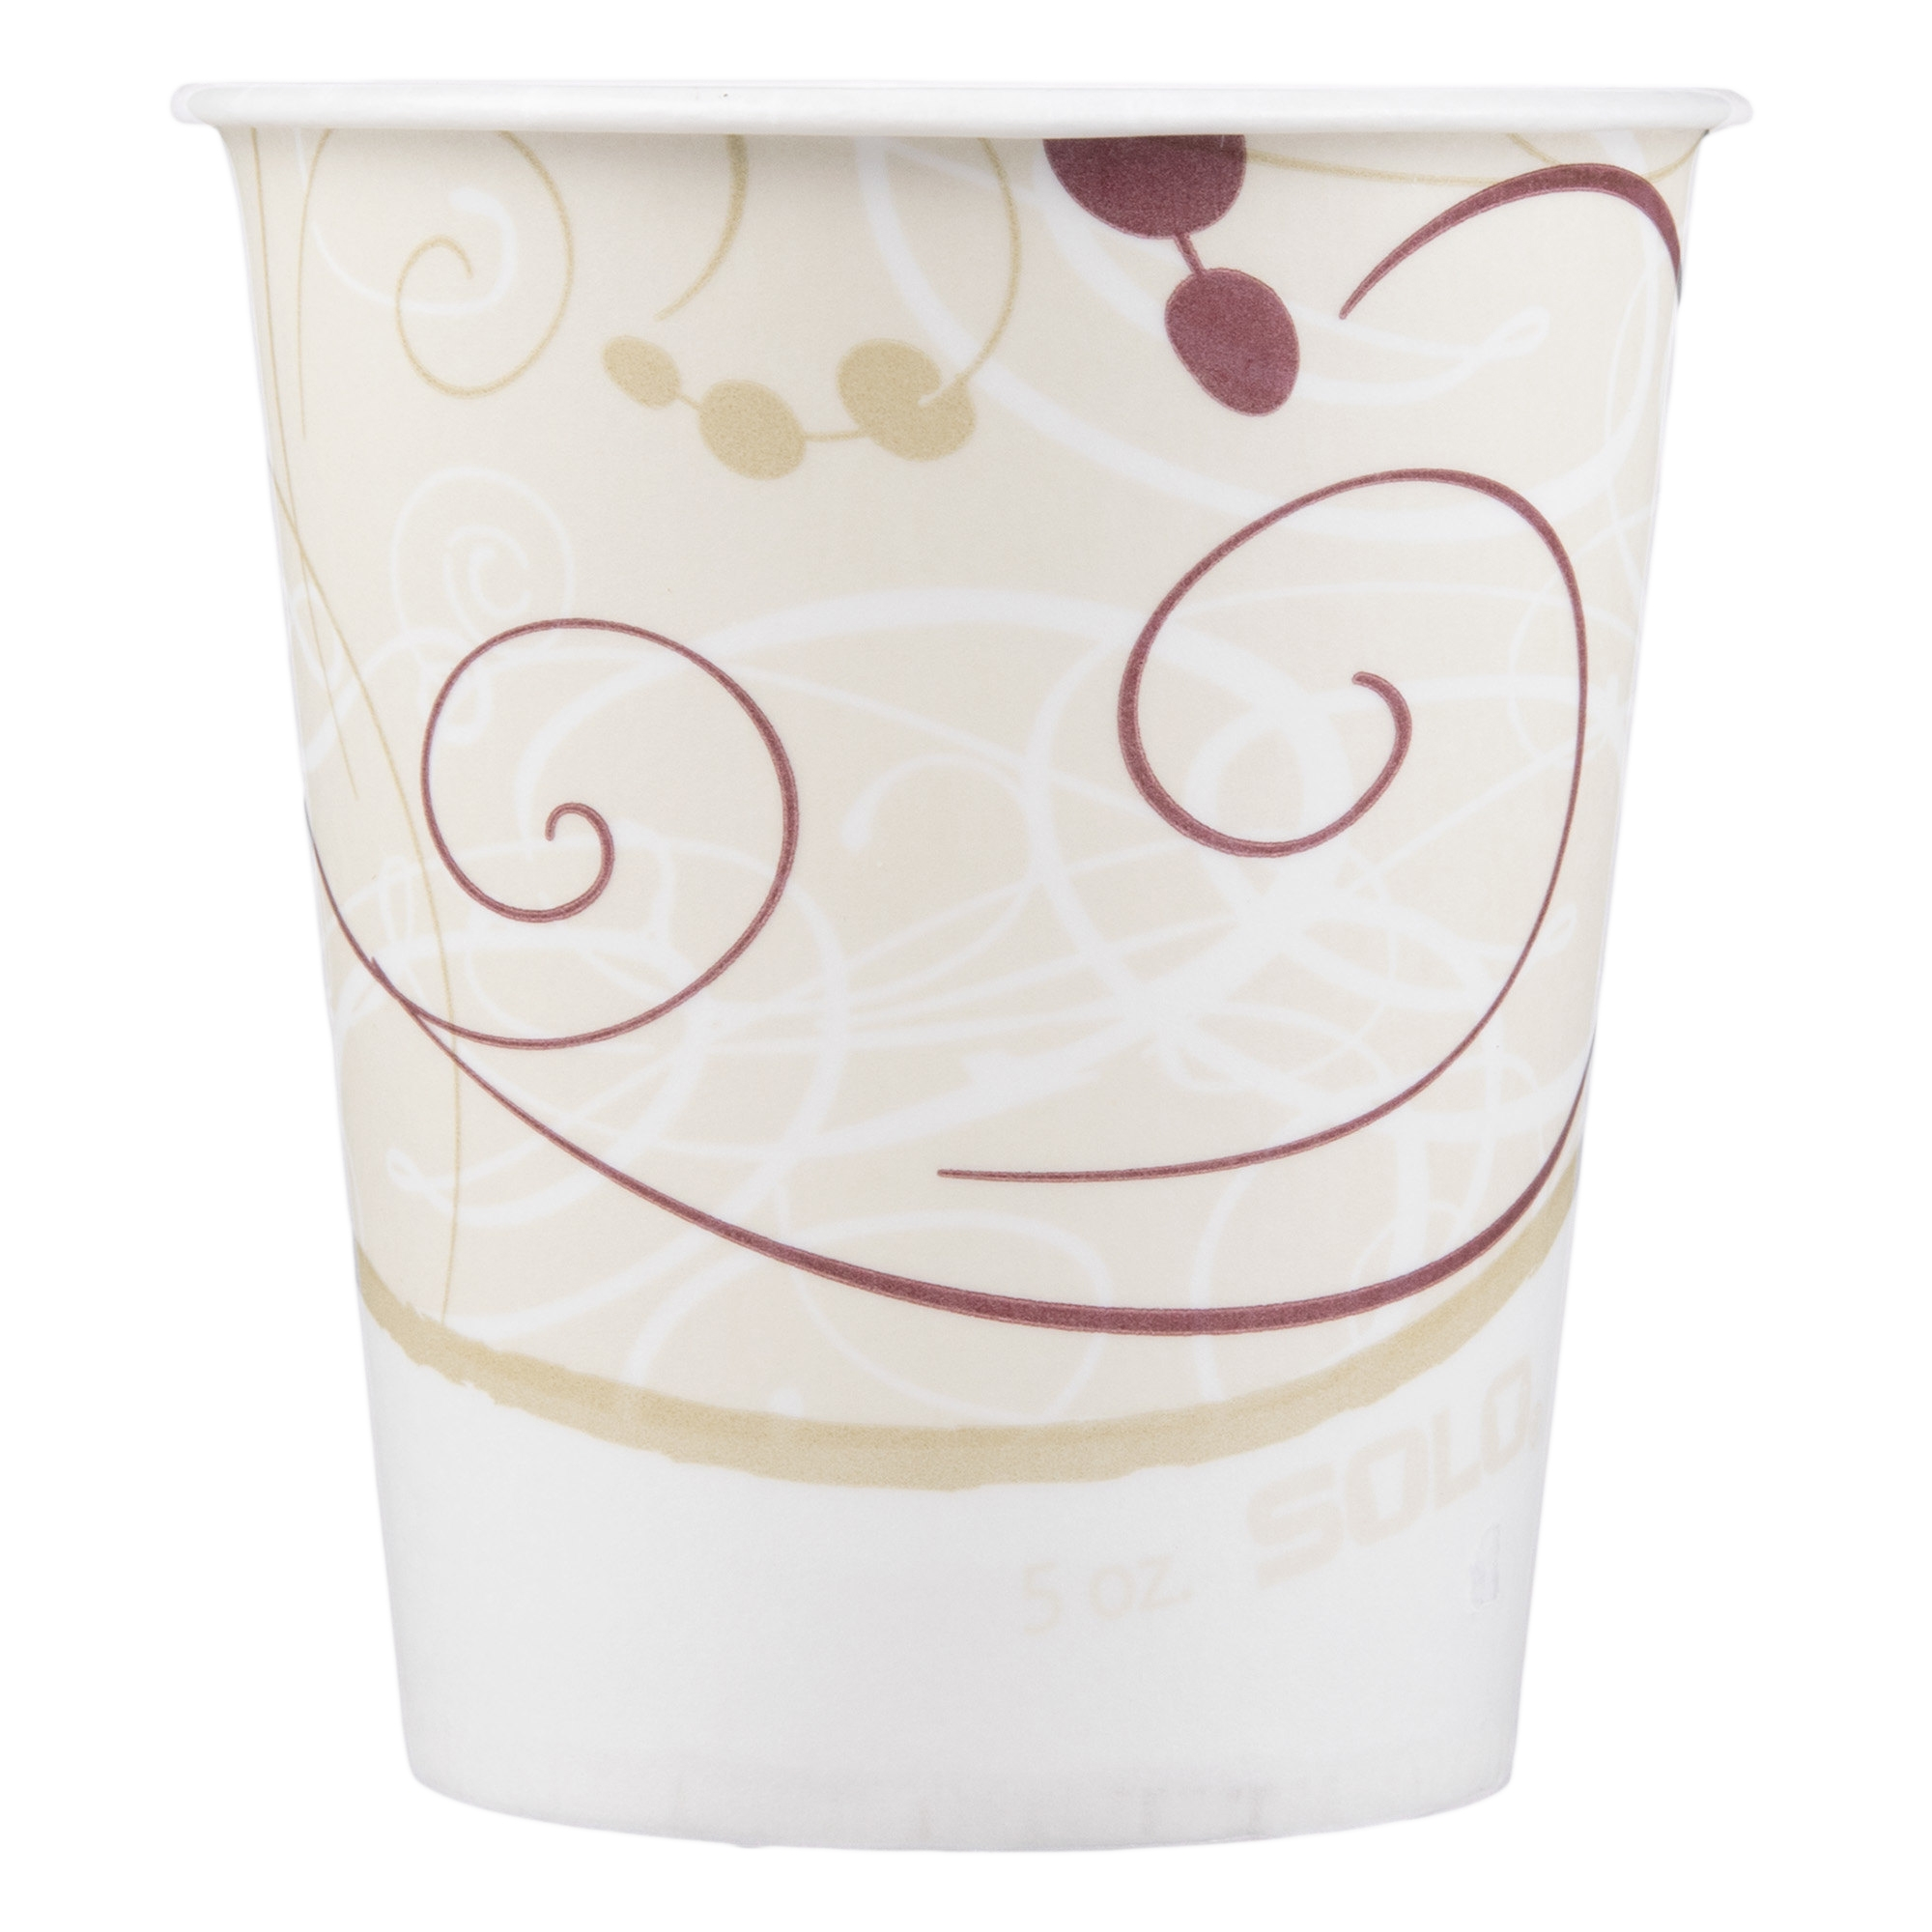 Solo Disposable Paper Drinking Cup, Symphony Print, R53-J8000, 5 oz - Sleeve of 100